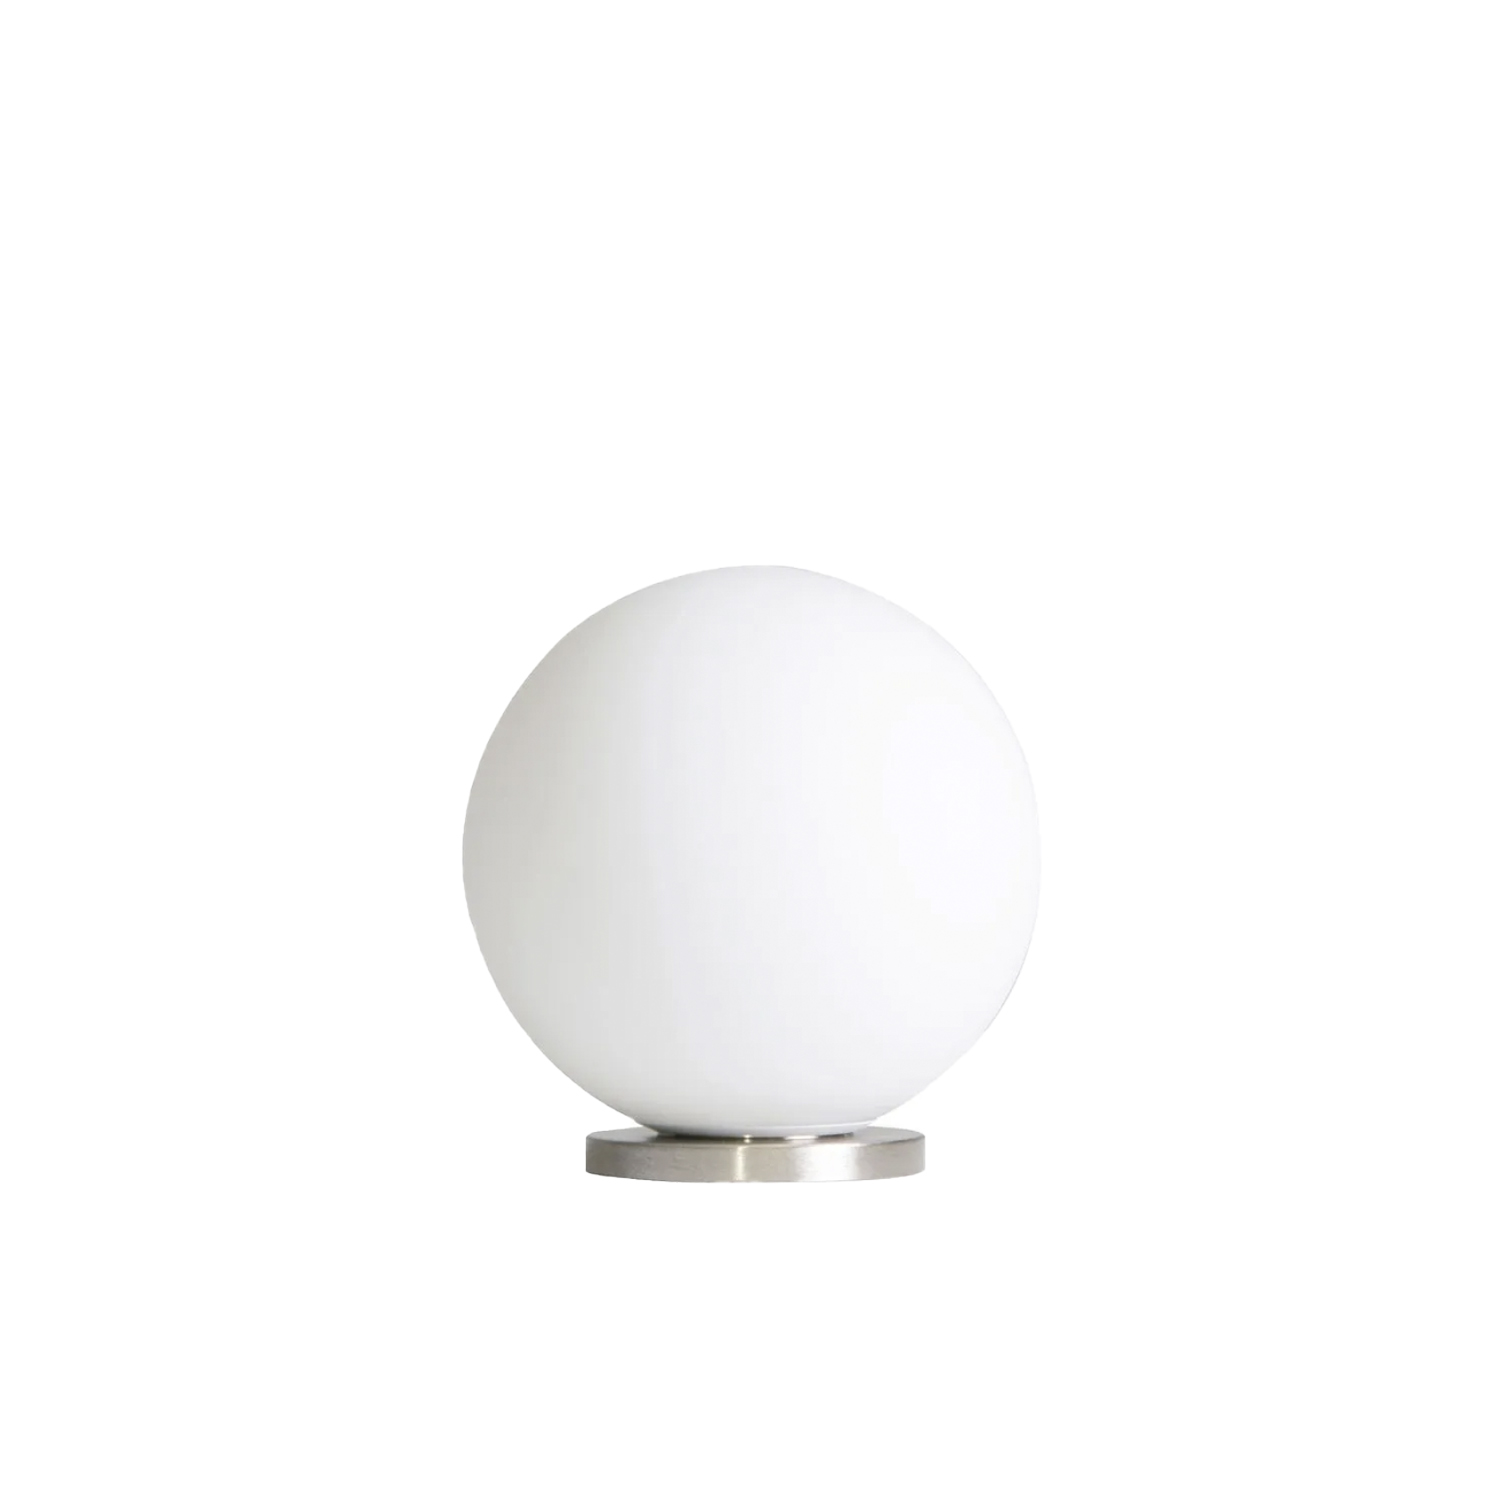 Pallina Table Lamp - The perfection of glass and sphere to create the most essential object of the collection. A must-have for every space of the house, inspired by the Italian theatre and Broadway musicals from 40's and 50's. Simplicity and seriality. Pallina. One, no one, one hundred thousand.  Table lamp with diffused light not dimmable. Galvanized metal frame. Diffuser made of opalyne blown glass with satin-finish. Transparent power cable, switch and plug. European two-pole plug. Bulb not included. | Matter of Stuff